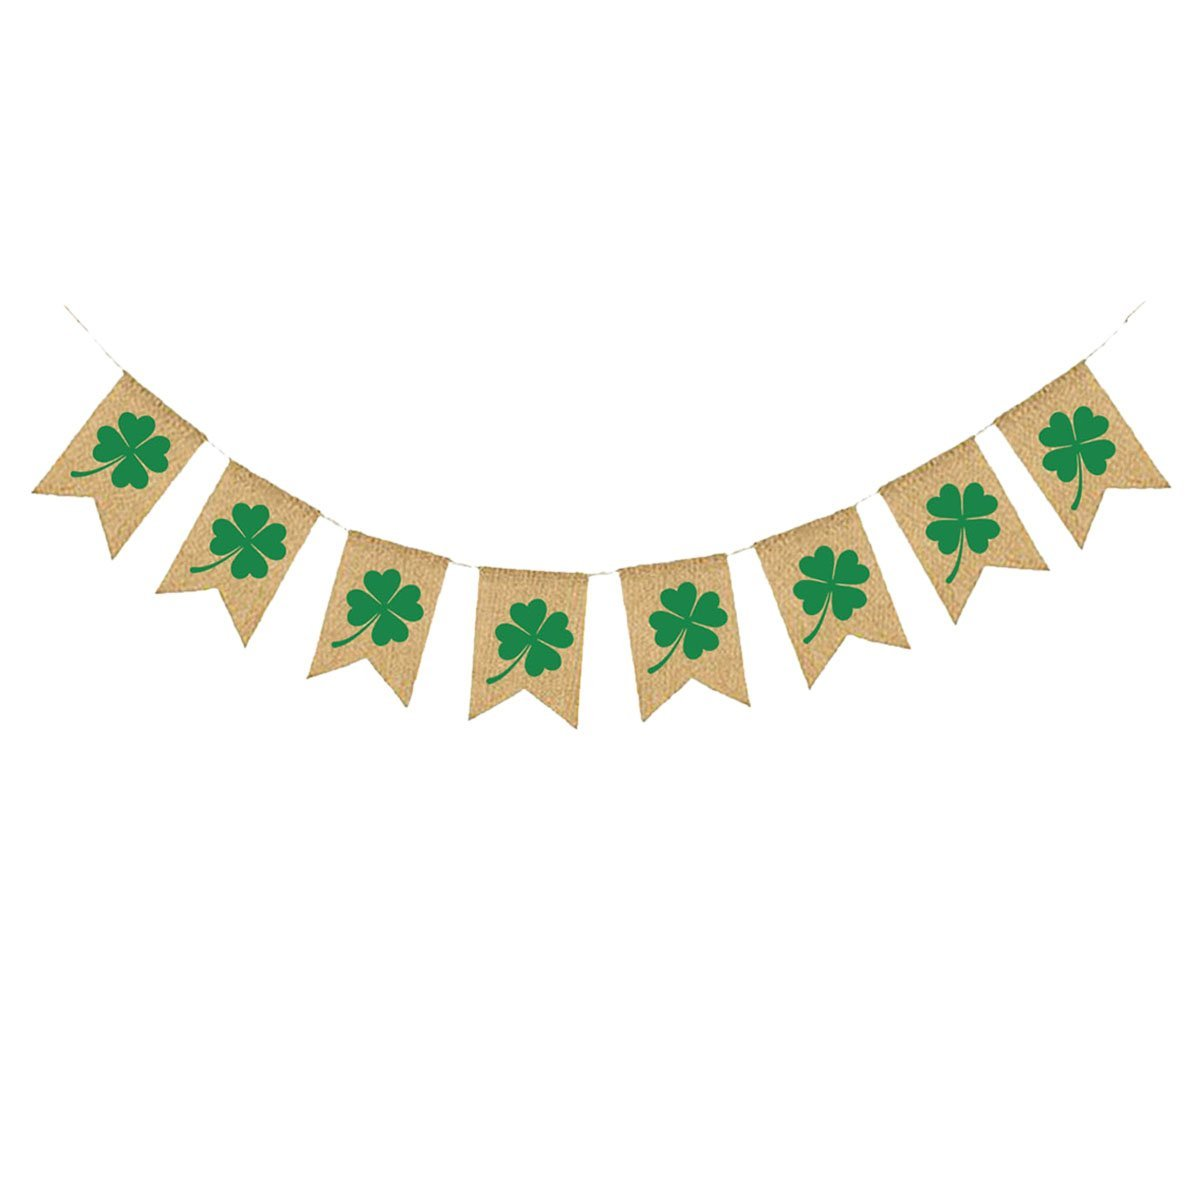 b775aadf63ff6 Get Quotations · OULII St Patrick's Day Banner Irish Shamrock Burlap Lucky  Green Clover Bunting Garland For St.